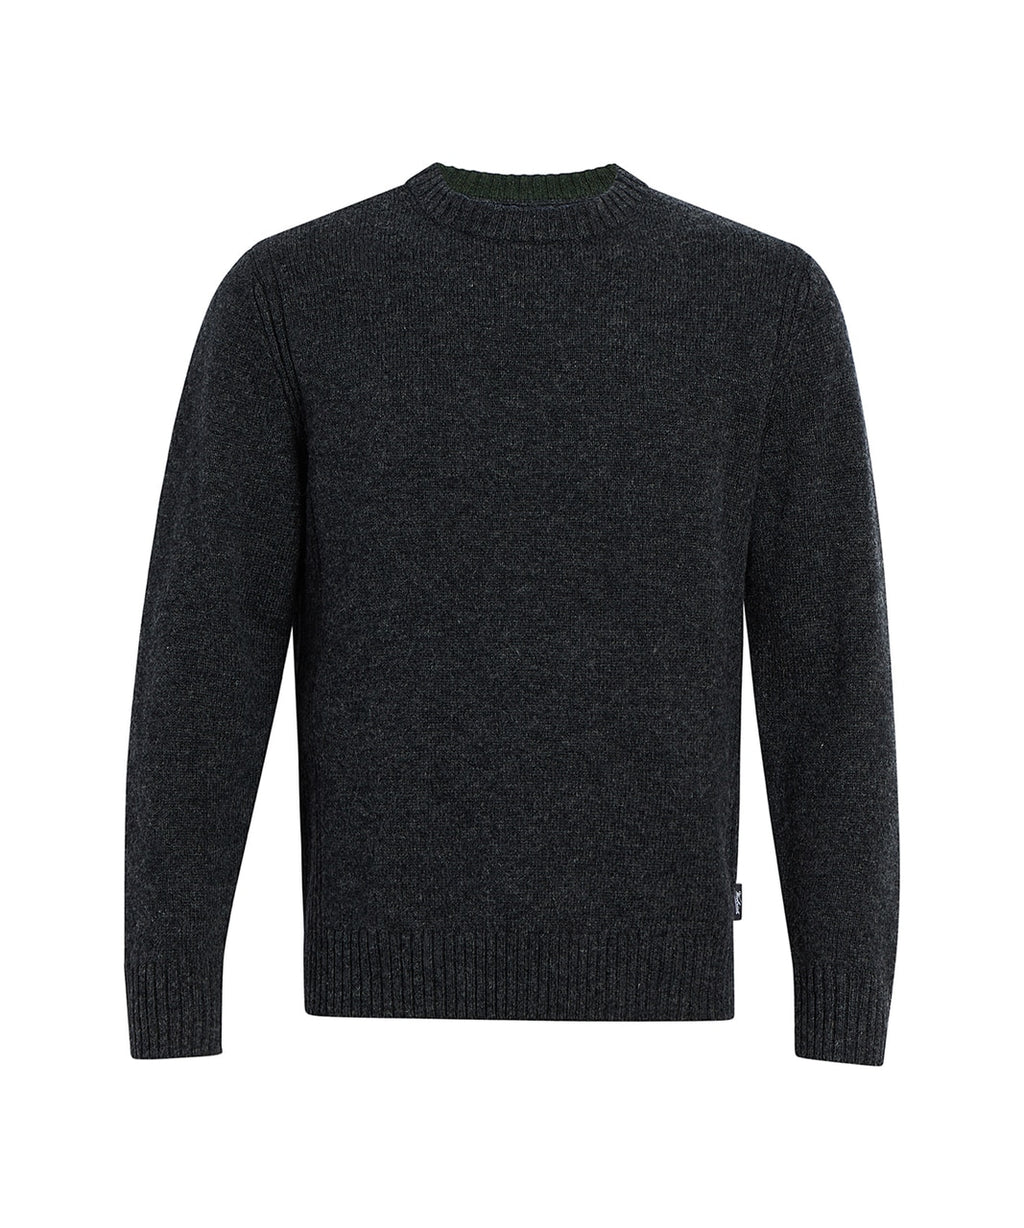 Woolrich - Kennebeck Shetland Sweater - Asphalt Heather -  Guys